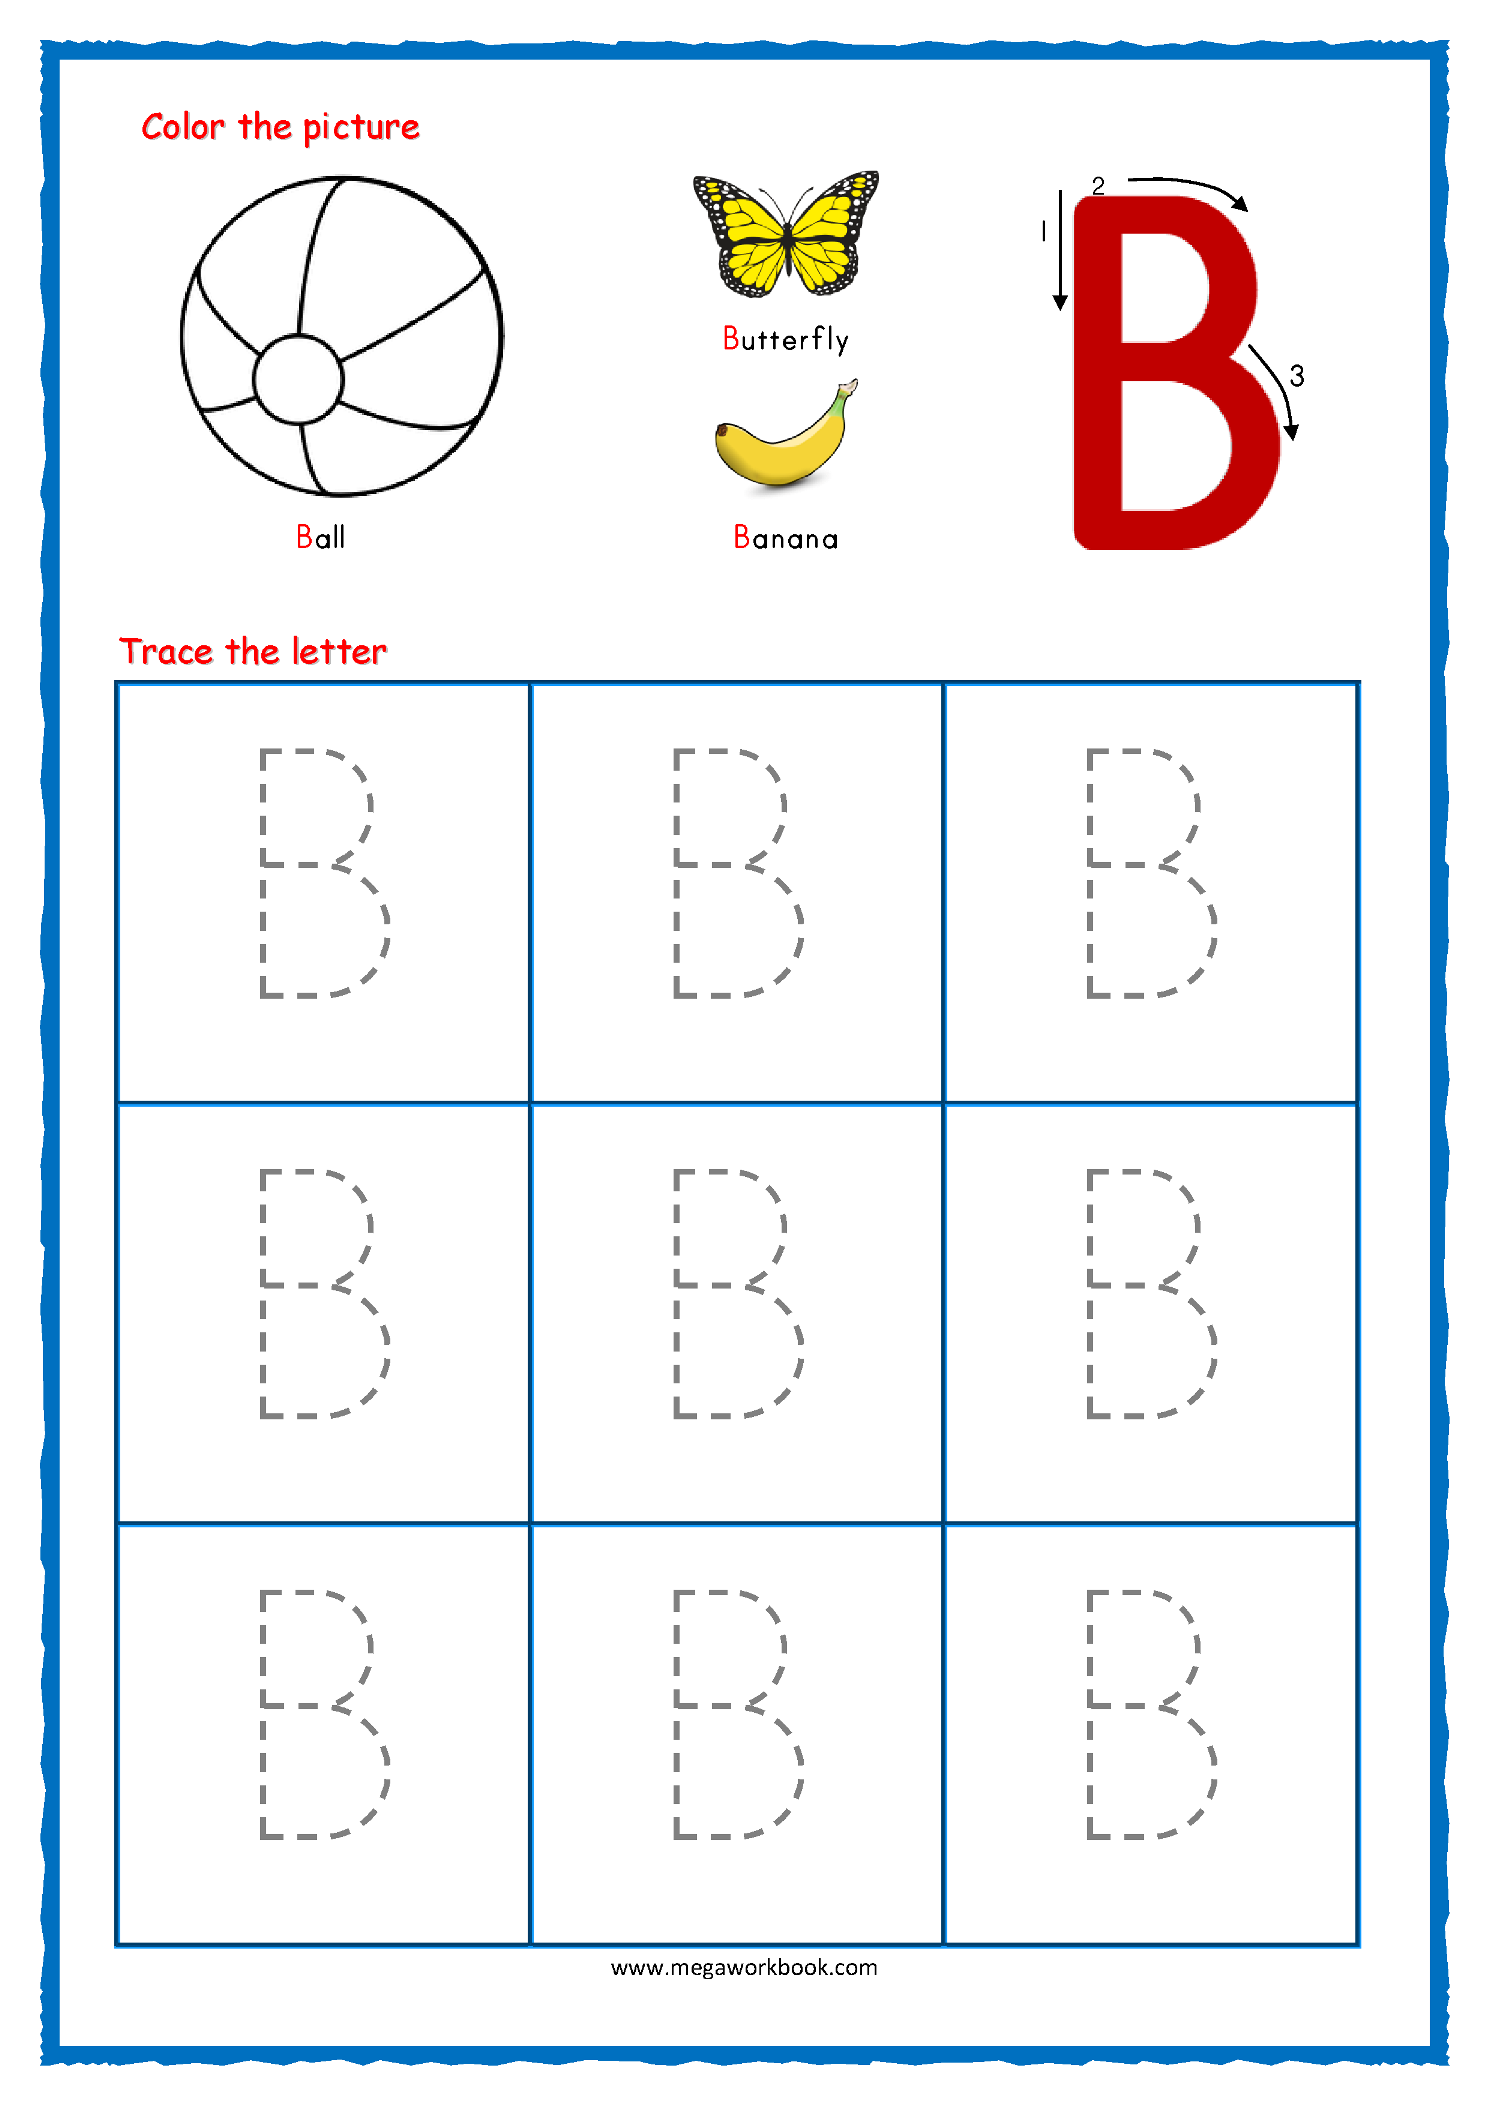 Fantastic Alphabet Writing Practice Sheets For Preschoolers pertaining to Alphabet Tracing Book Pdf